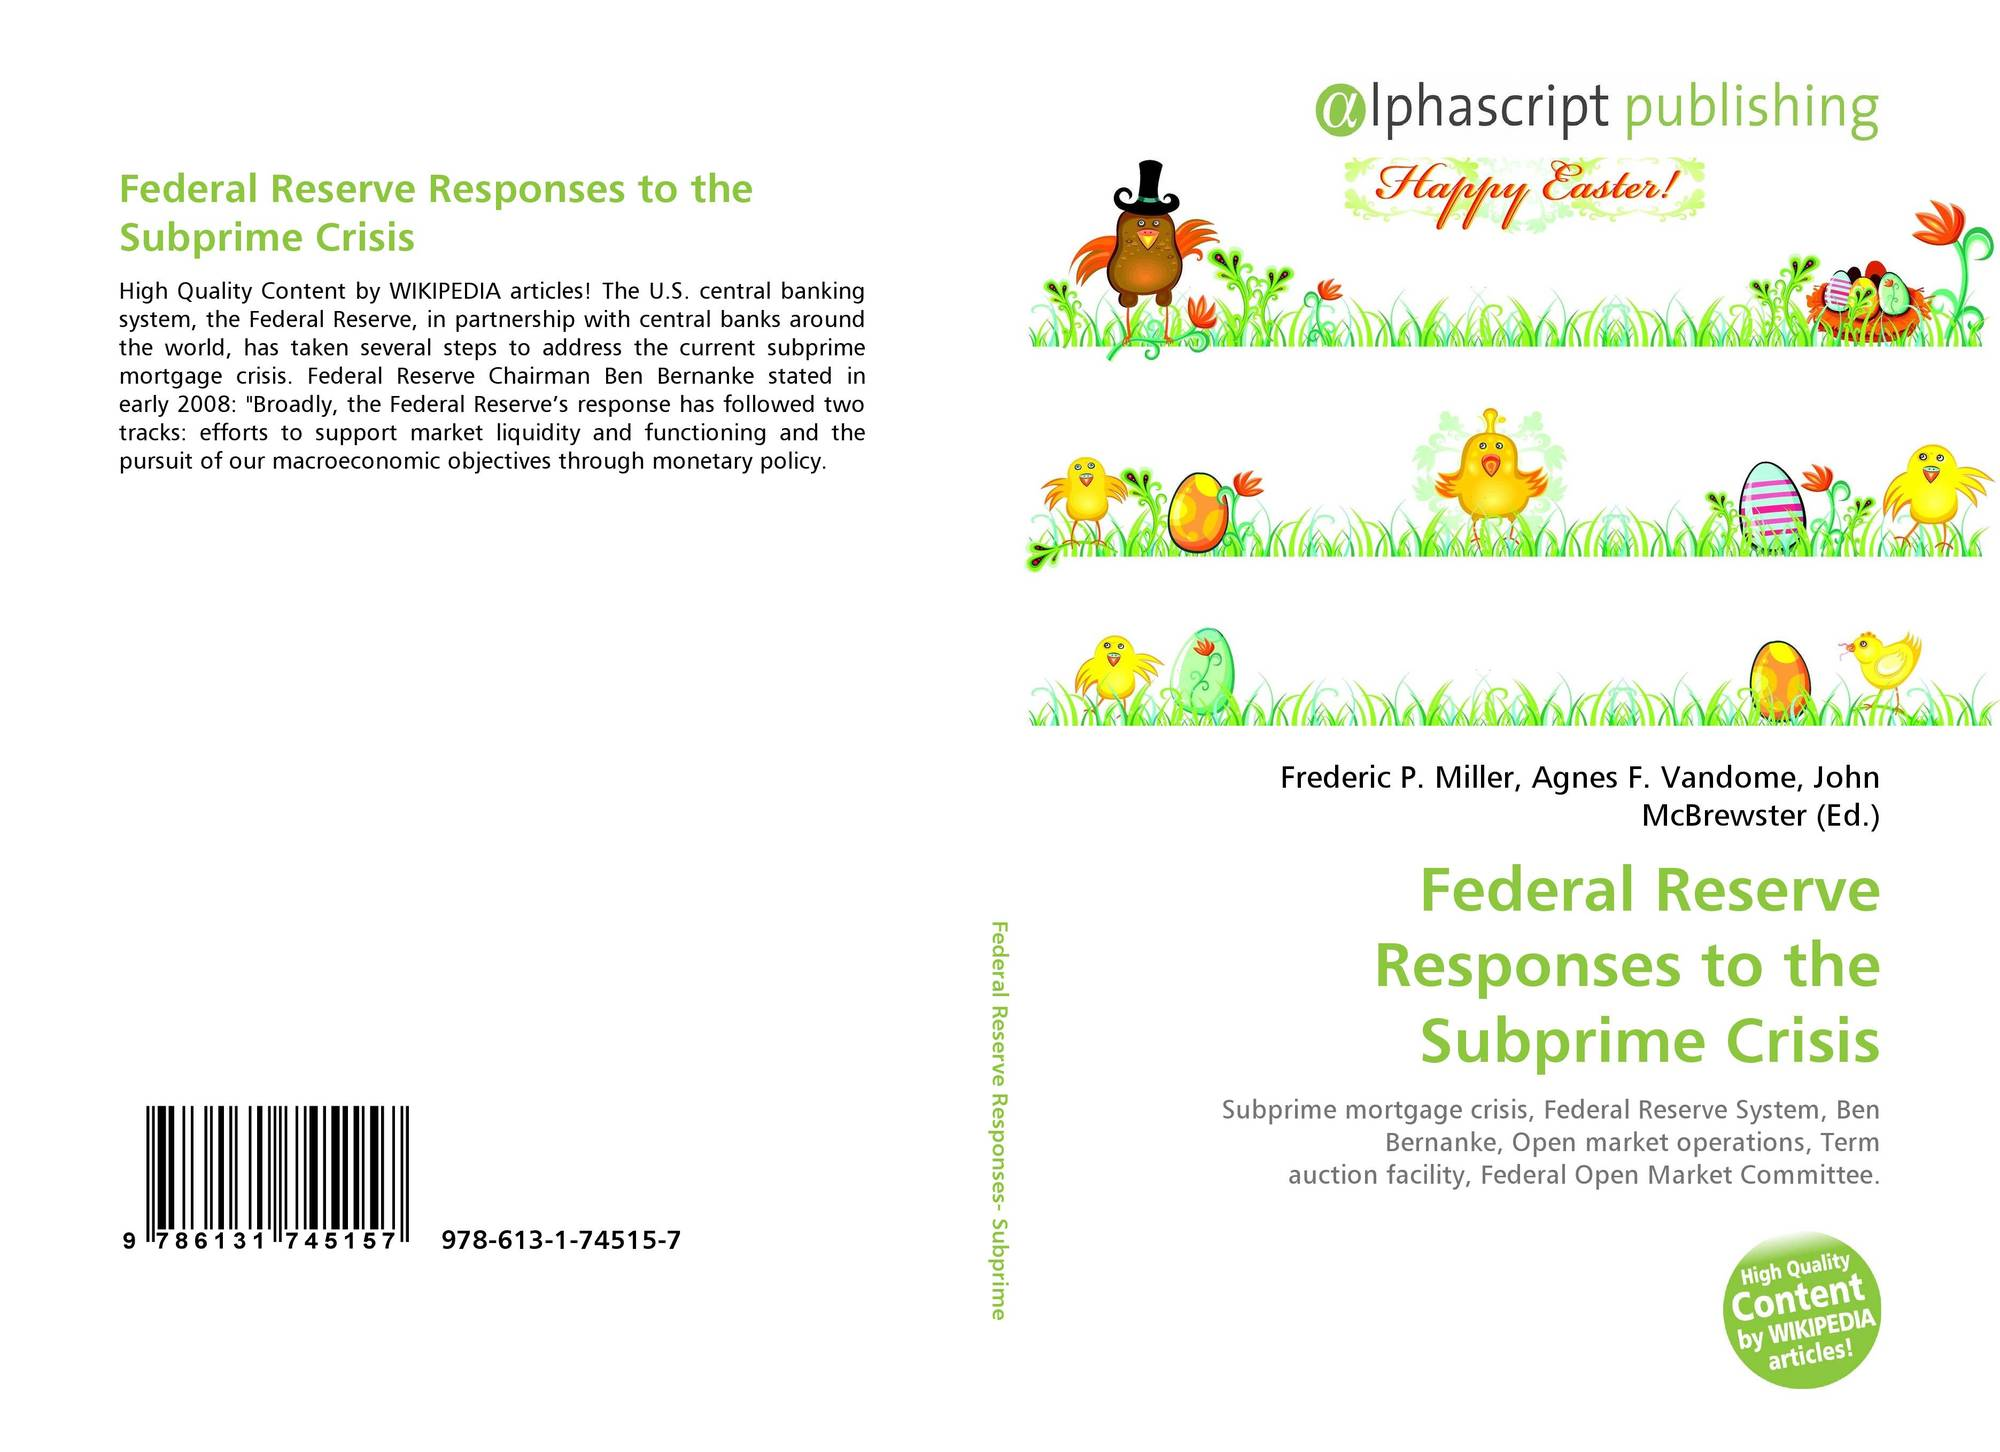 Federal Reserve Responses to the Subprime Crisis, 978-613-1-74515-7